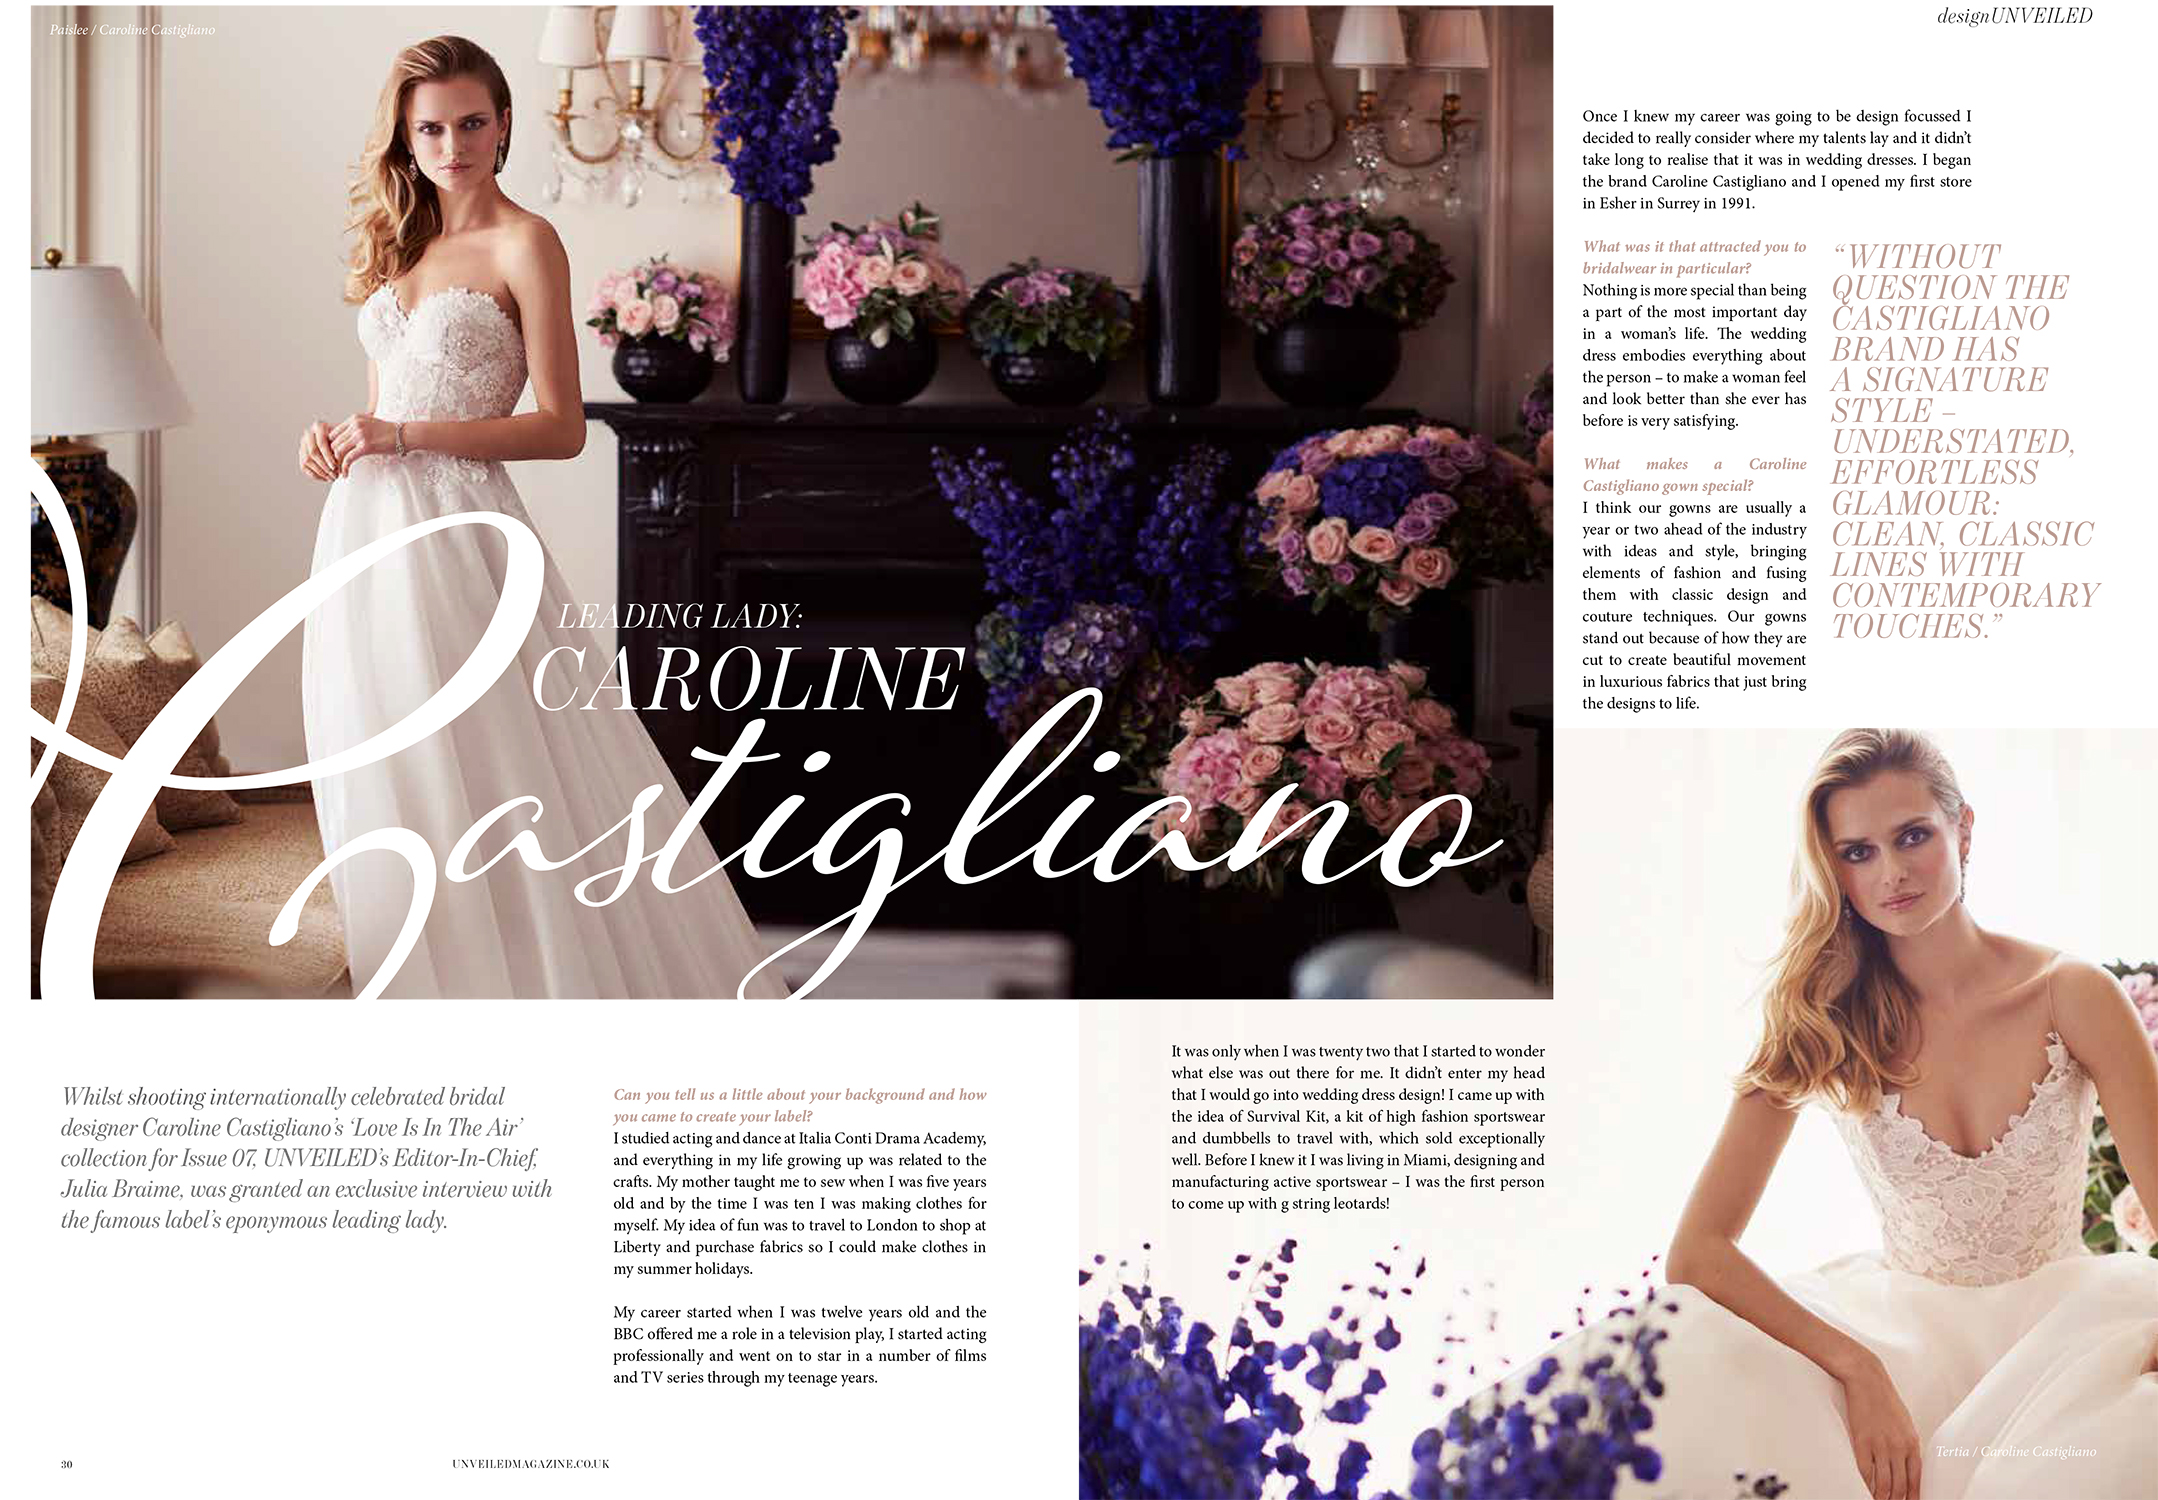 UNVEILED_ISSUE07_CarolineCastiglianoInterview-1